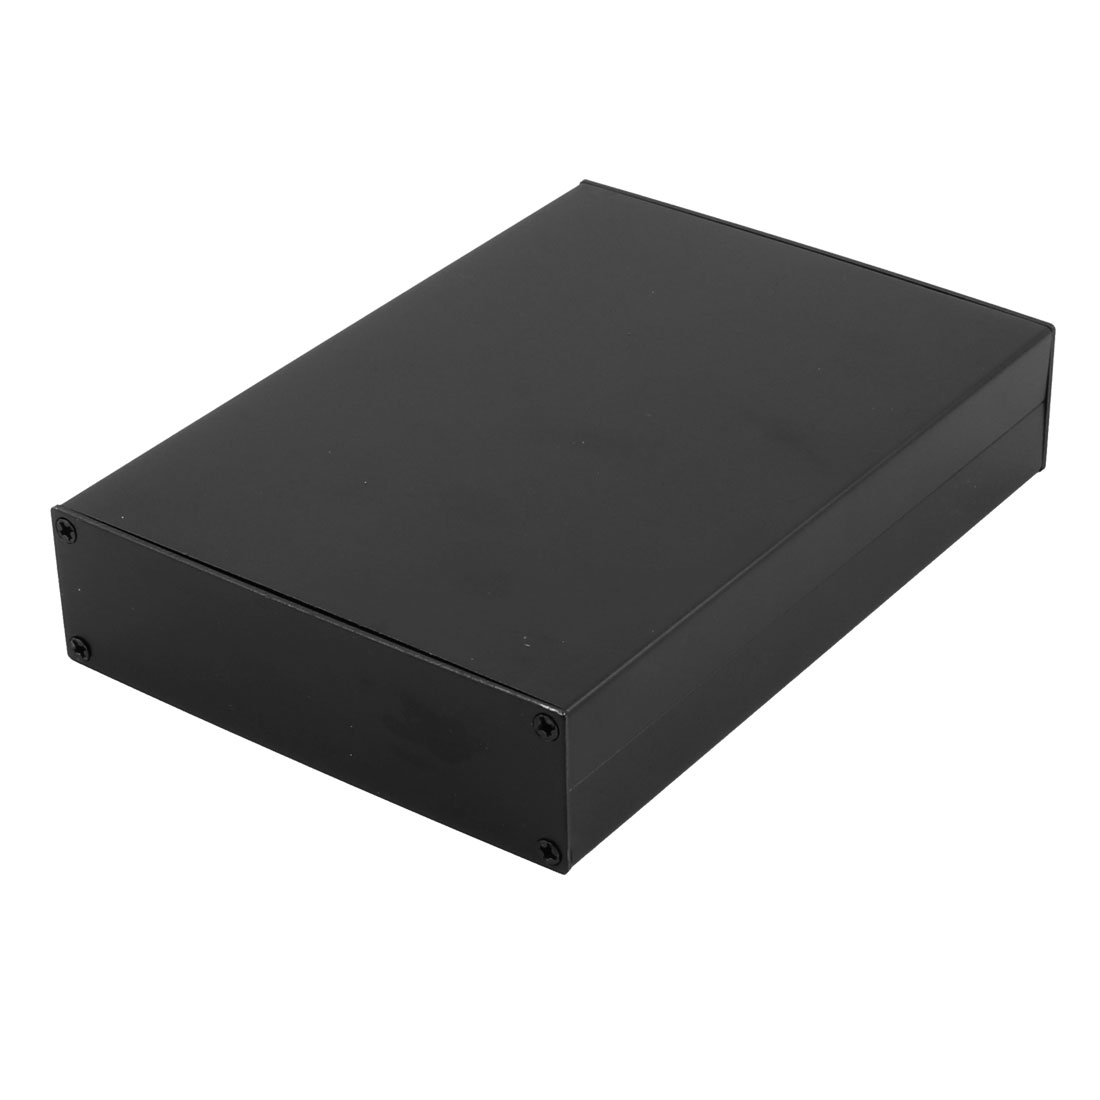 163 x 114 x 33mm Multi-purpose Electronic Extruded Aluminum Enclosure Case Black